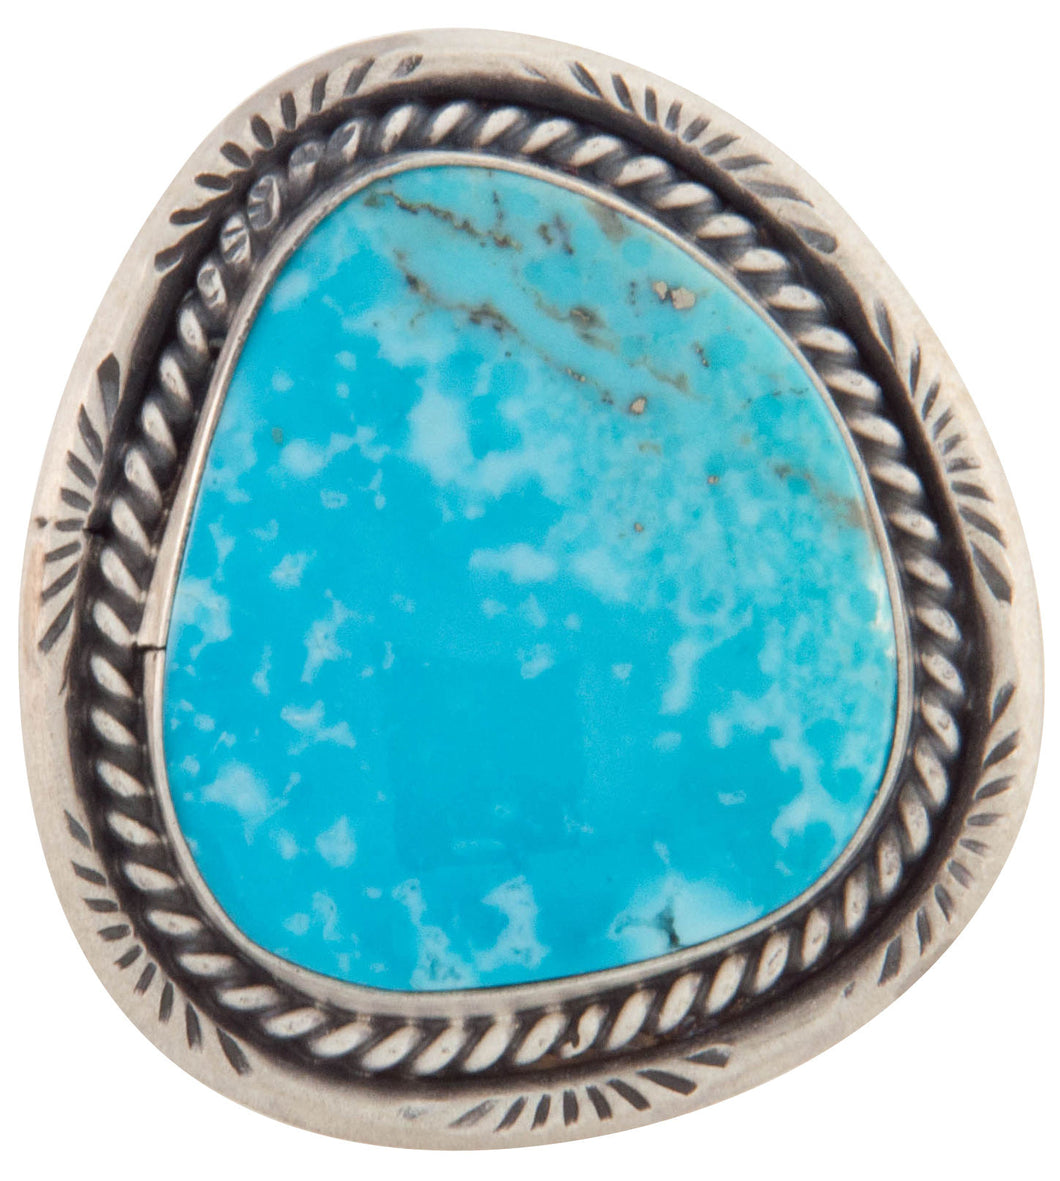 Navajo Native American Kingman Turquoise Ring Size 8 1/4 by Willeto SKU226877